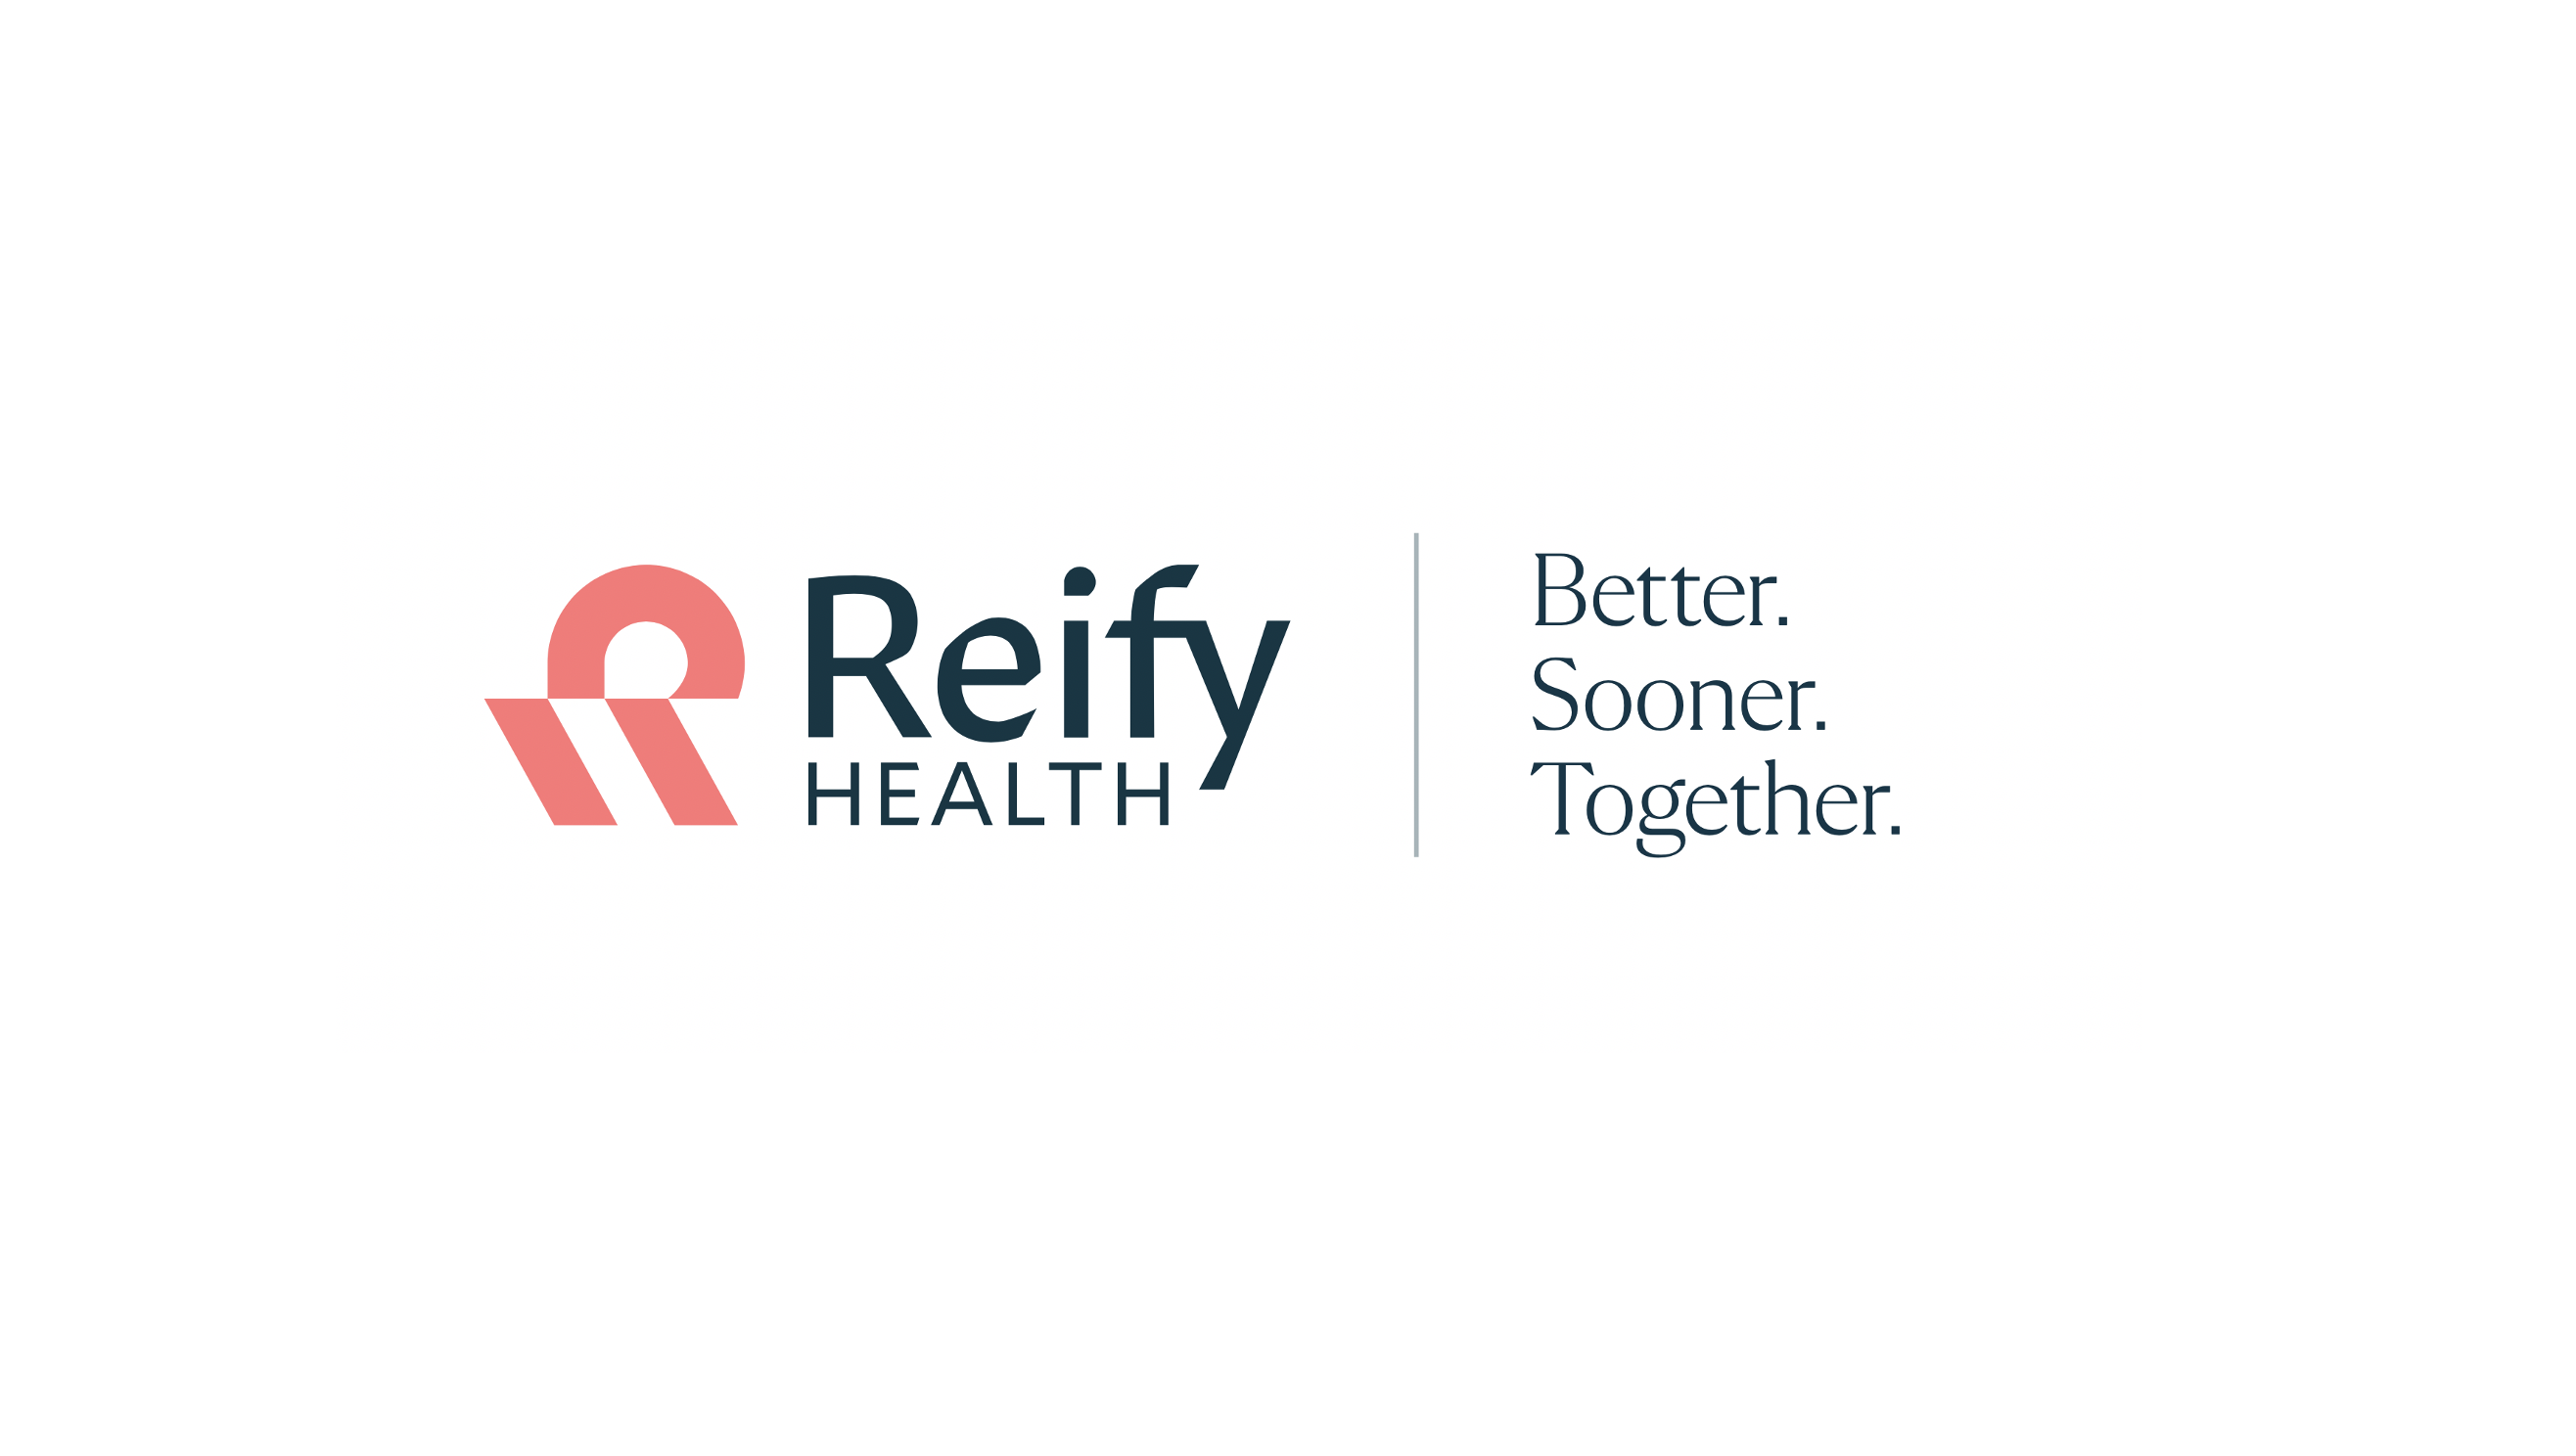 SubjectWell and Reify Health Surveyed Clinical Trial Sites, Examined Patient Concerns and Site Safety Protocols in the Face of COVID-19